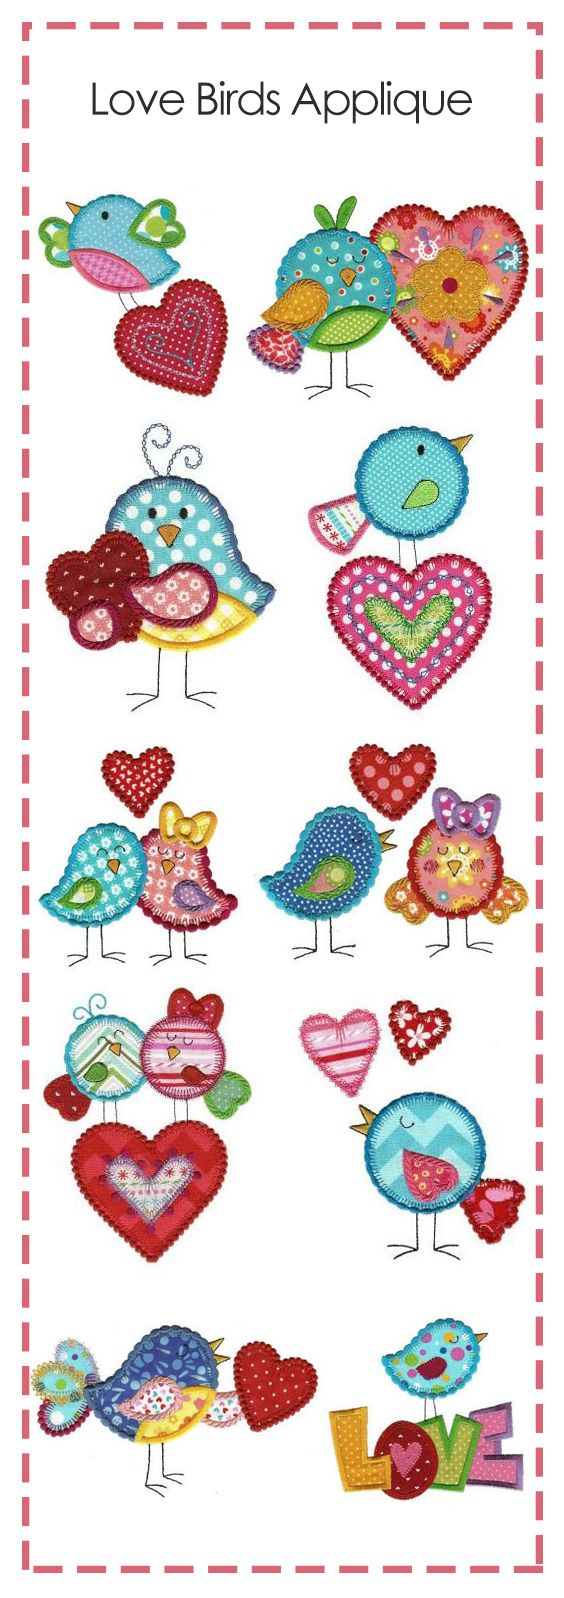 12 seriously sweet little love birds in applique for your Valentine's and spring projects!  #DesignsbyJuJu